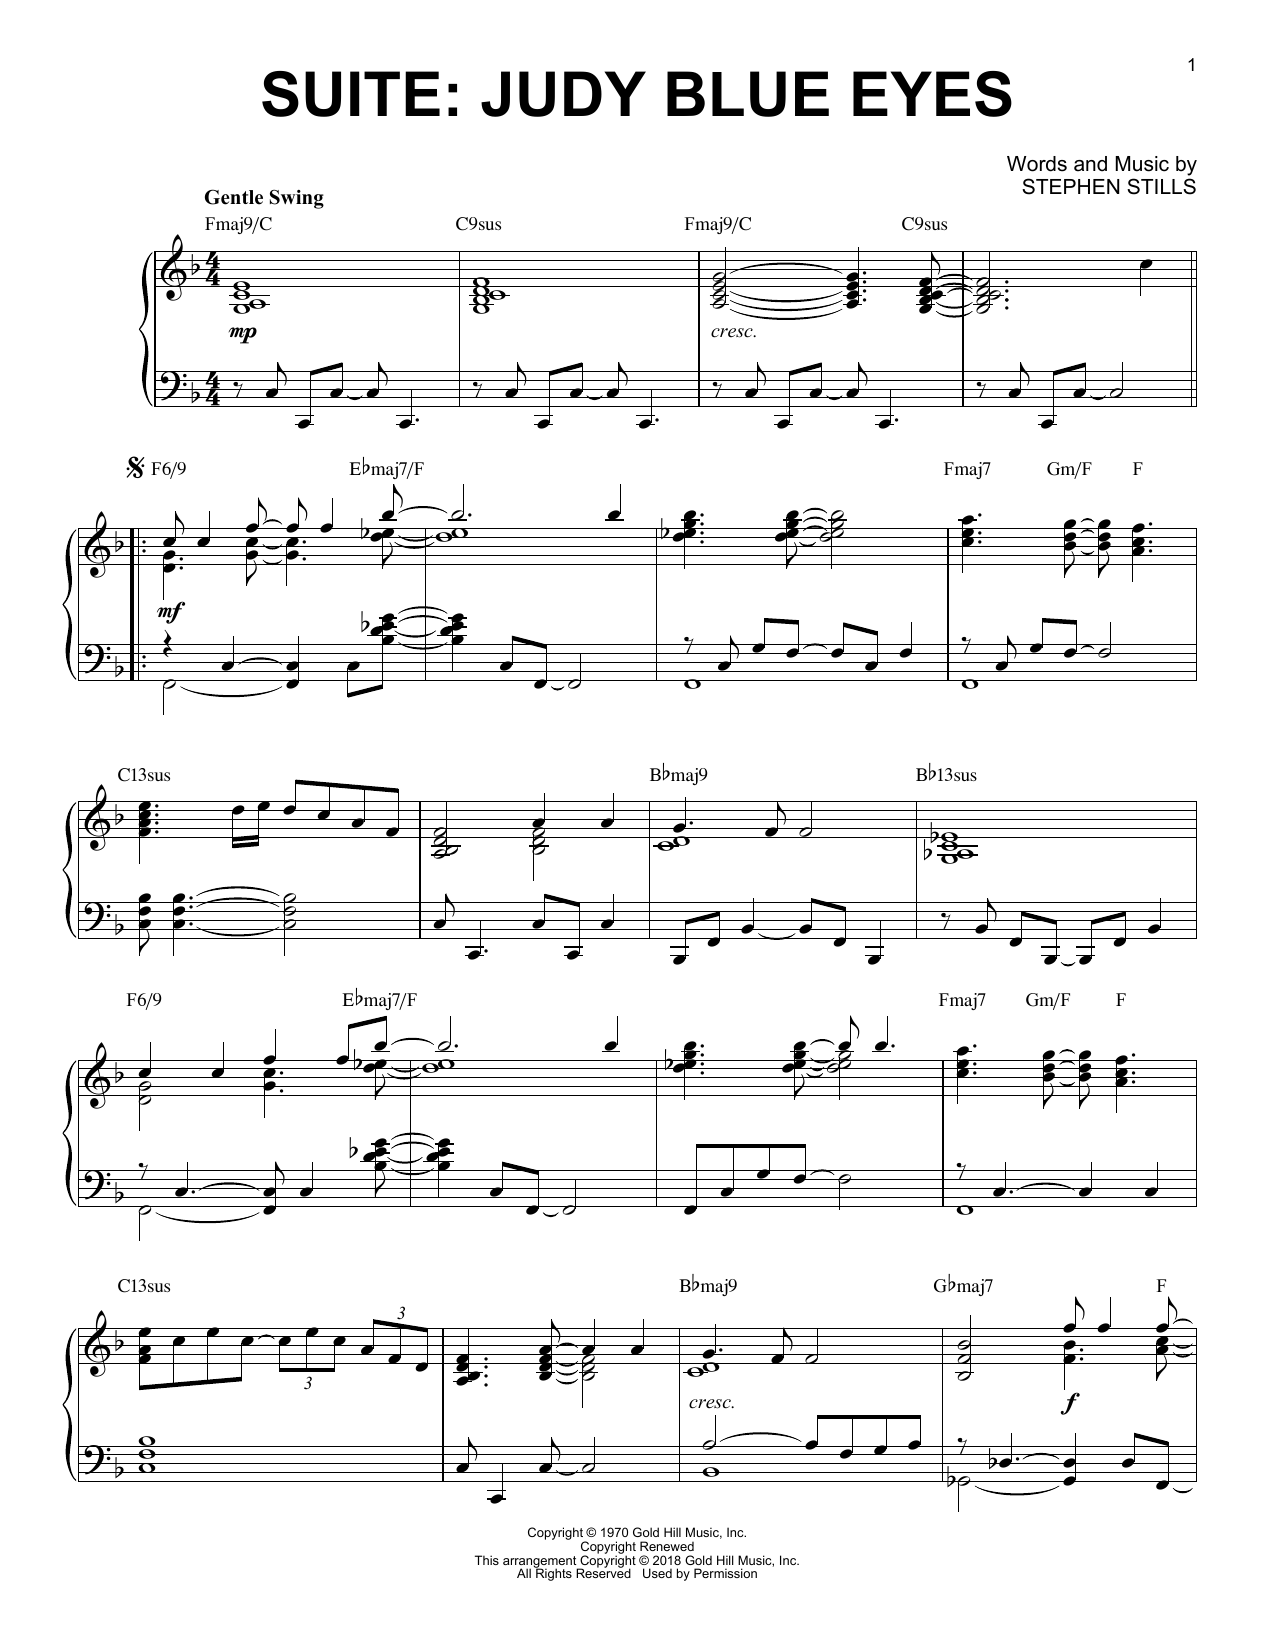 Crosby, Stills & Nash Suite: Judy Blue Eyes sheet music notes and chords